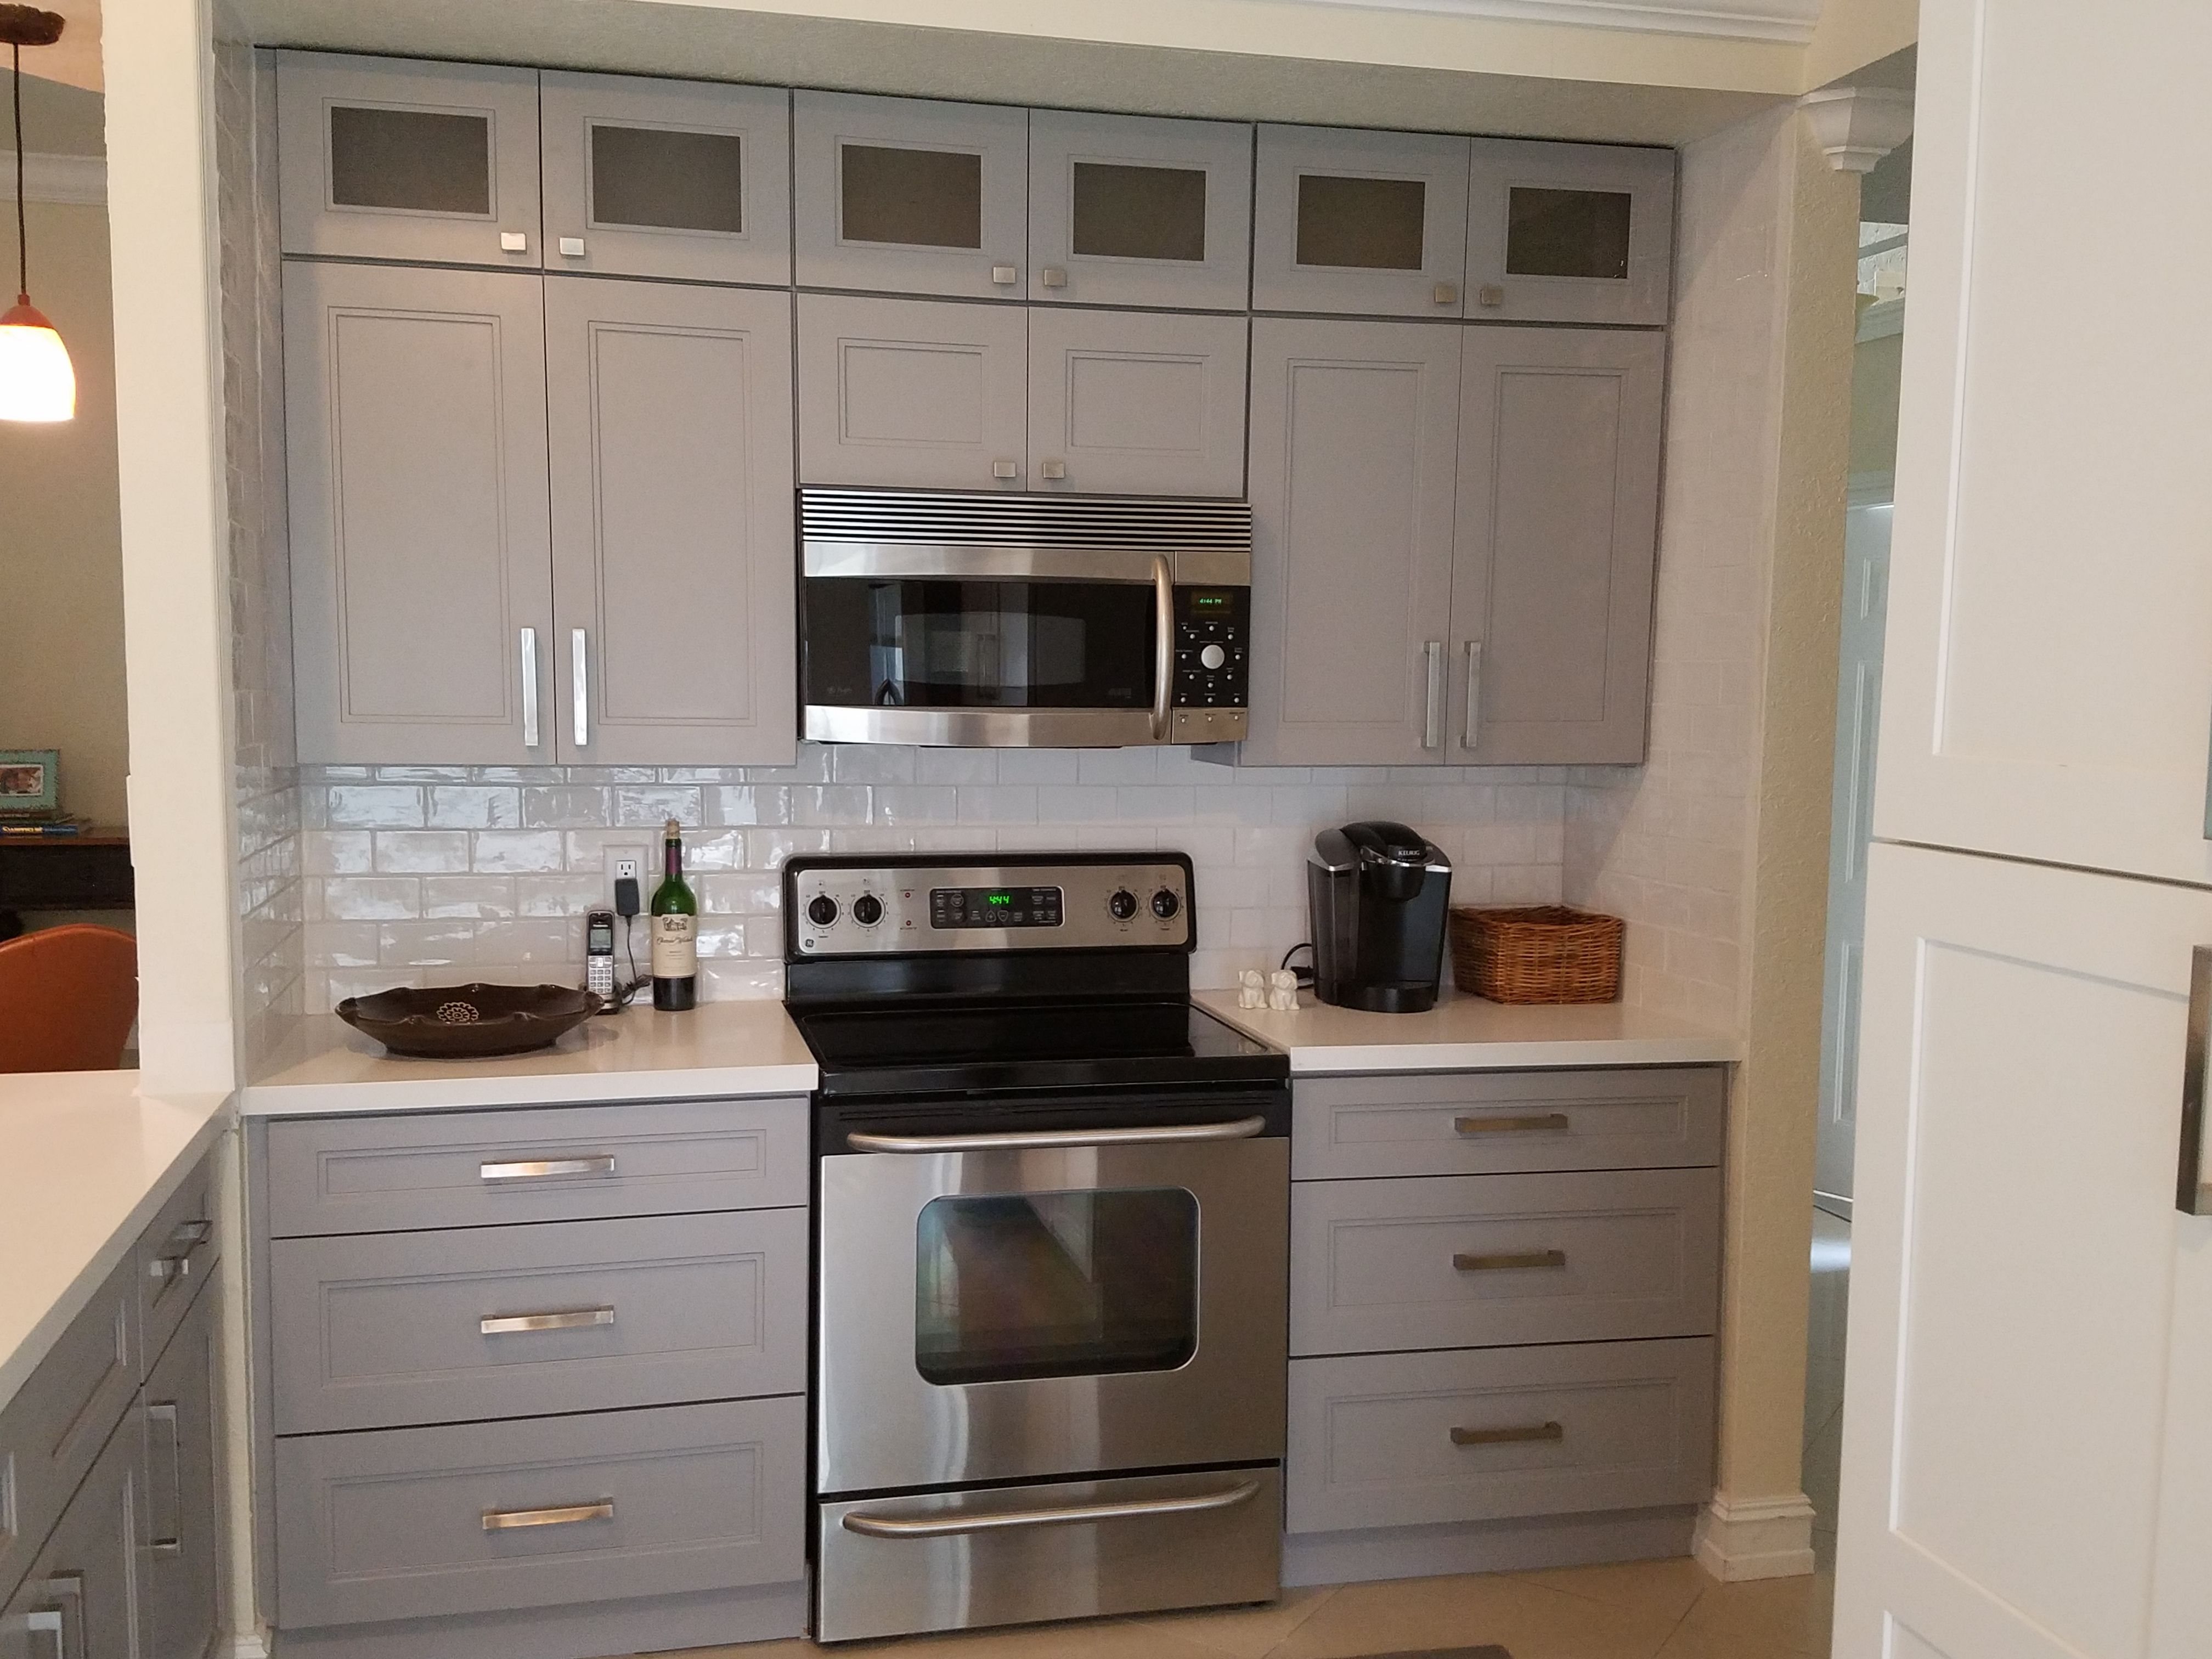 Image Result For Jarlin Cabinets Review Tall Kitchen Cabinets Assembled Kitchen Cabinets Kitchen Cabinets